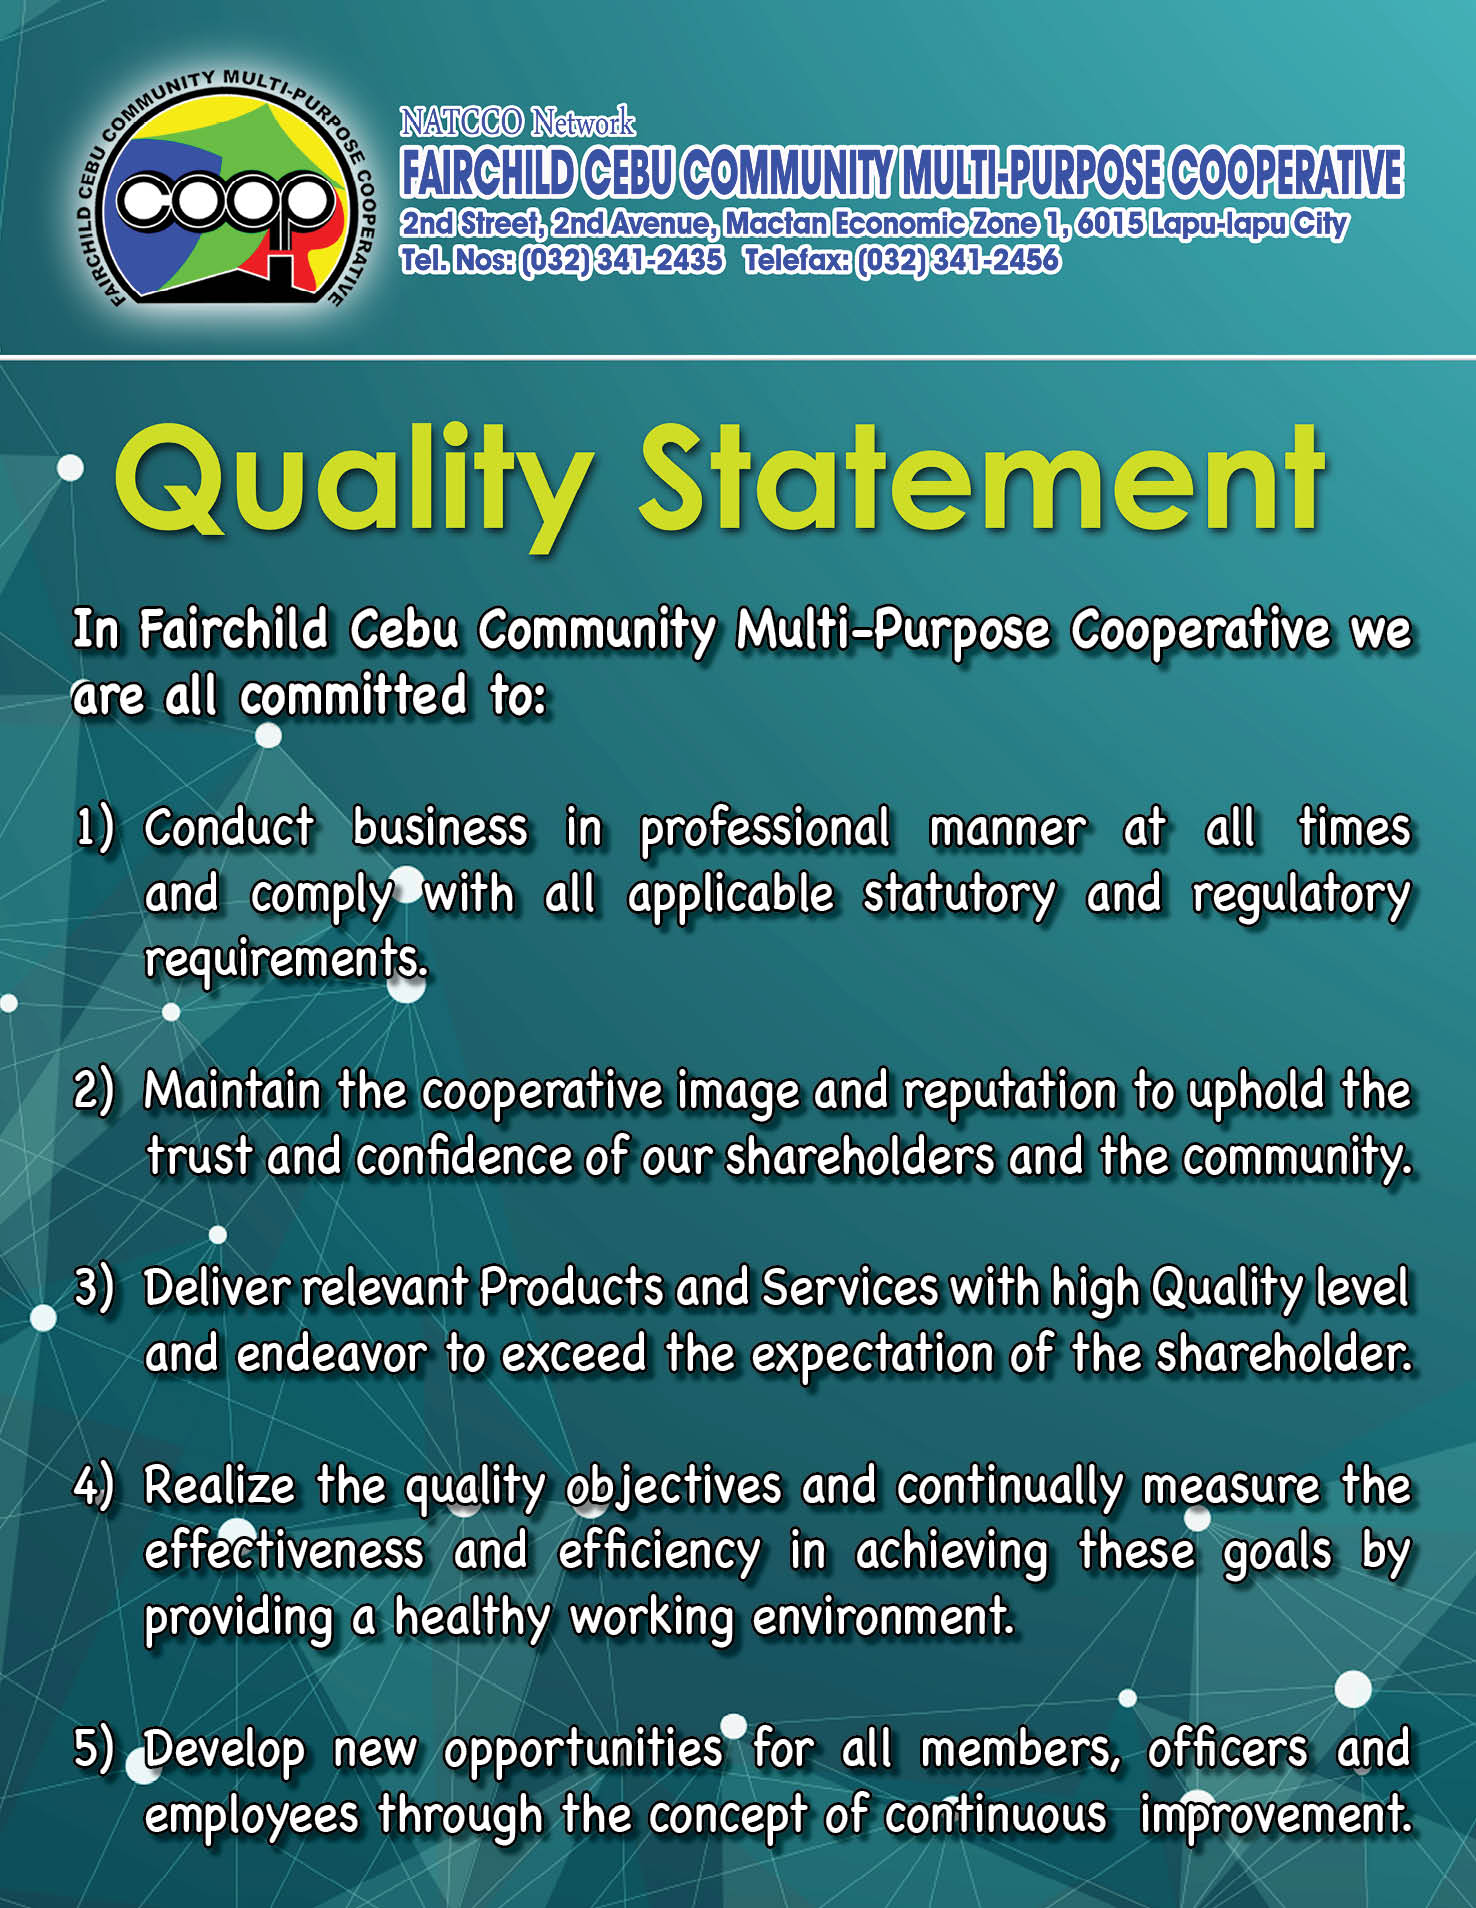 FCCMPC's Quality Statement!